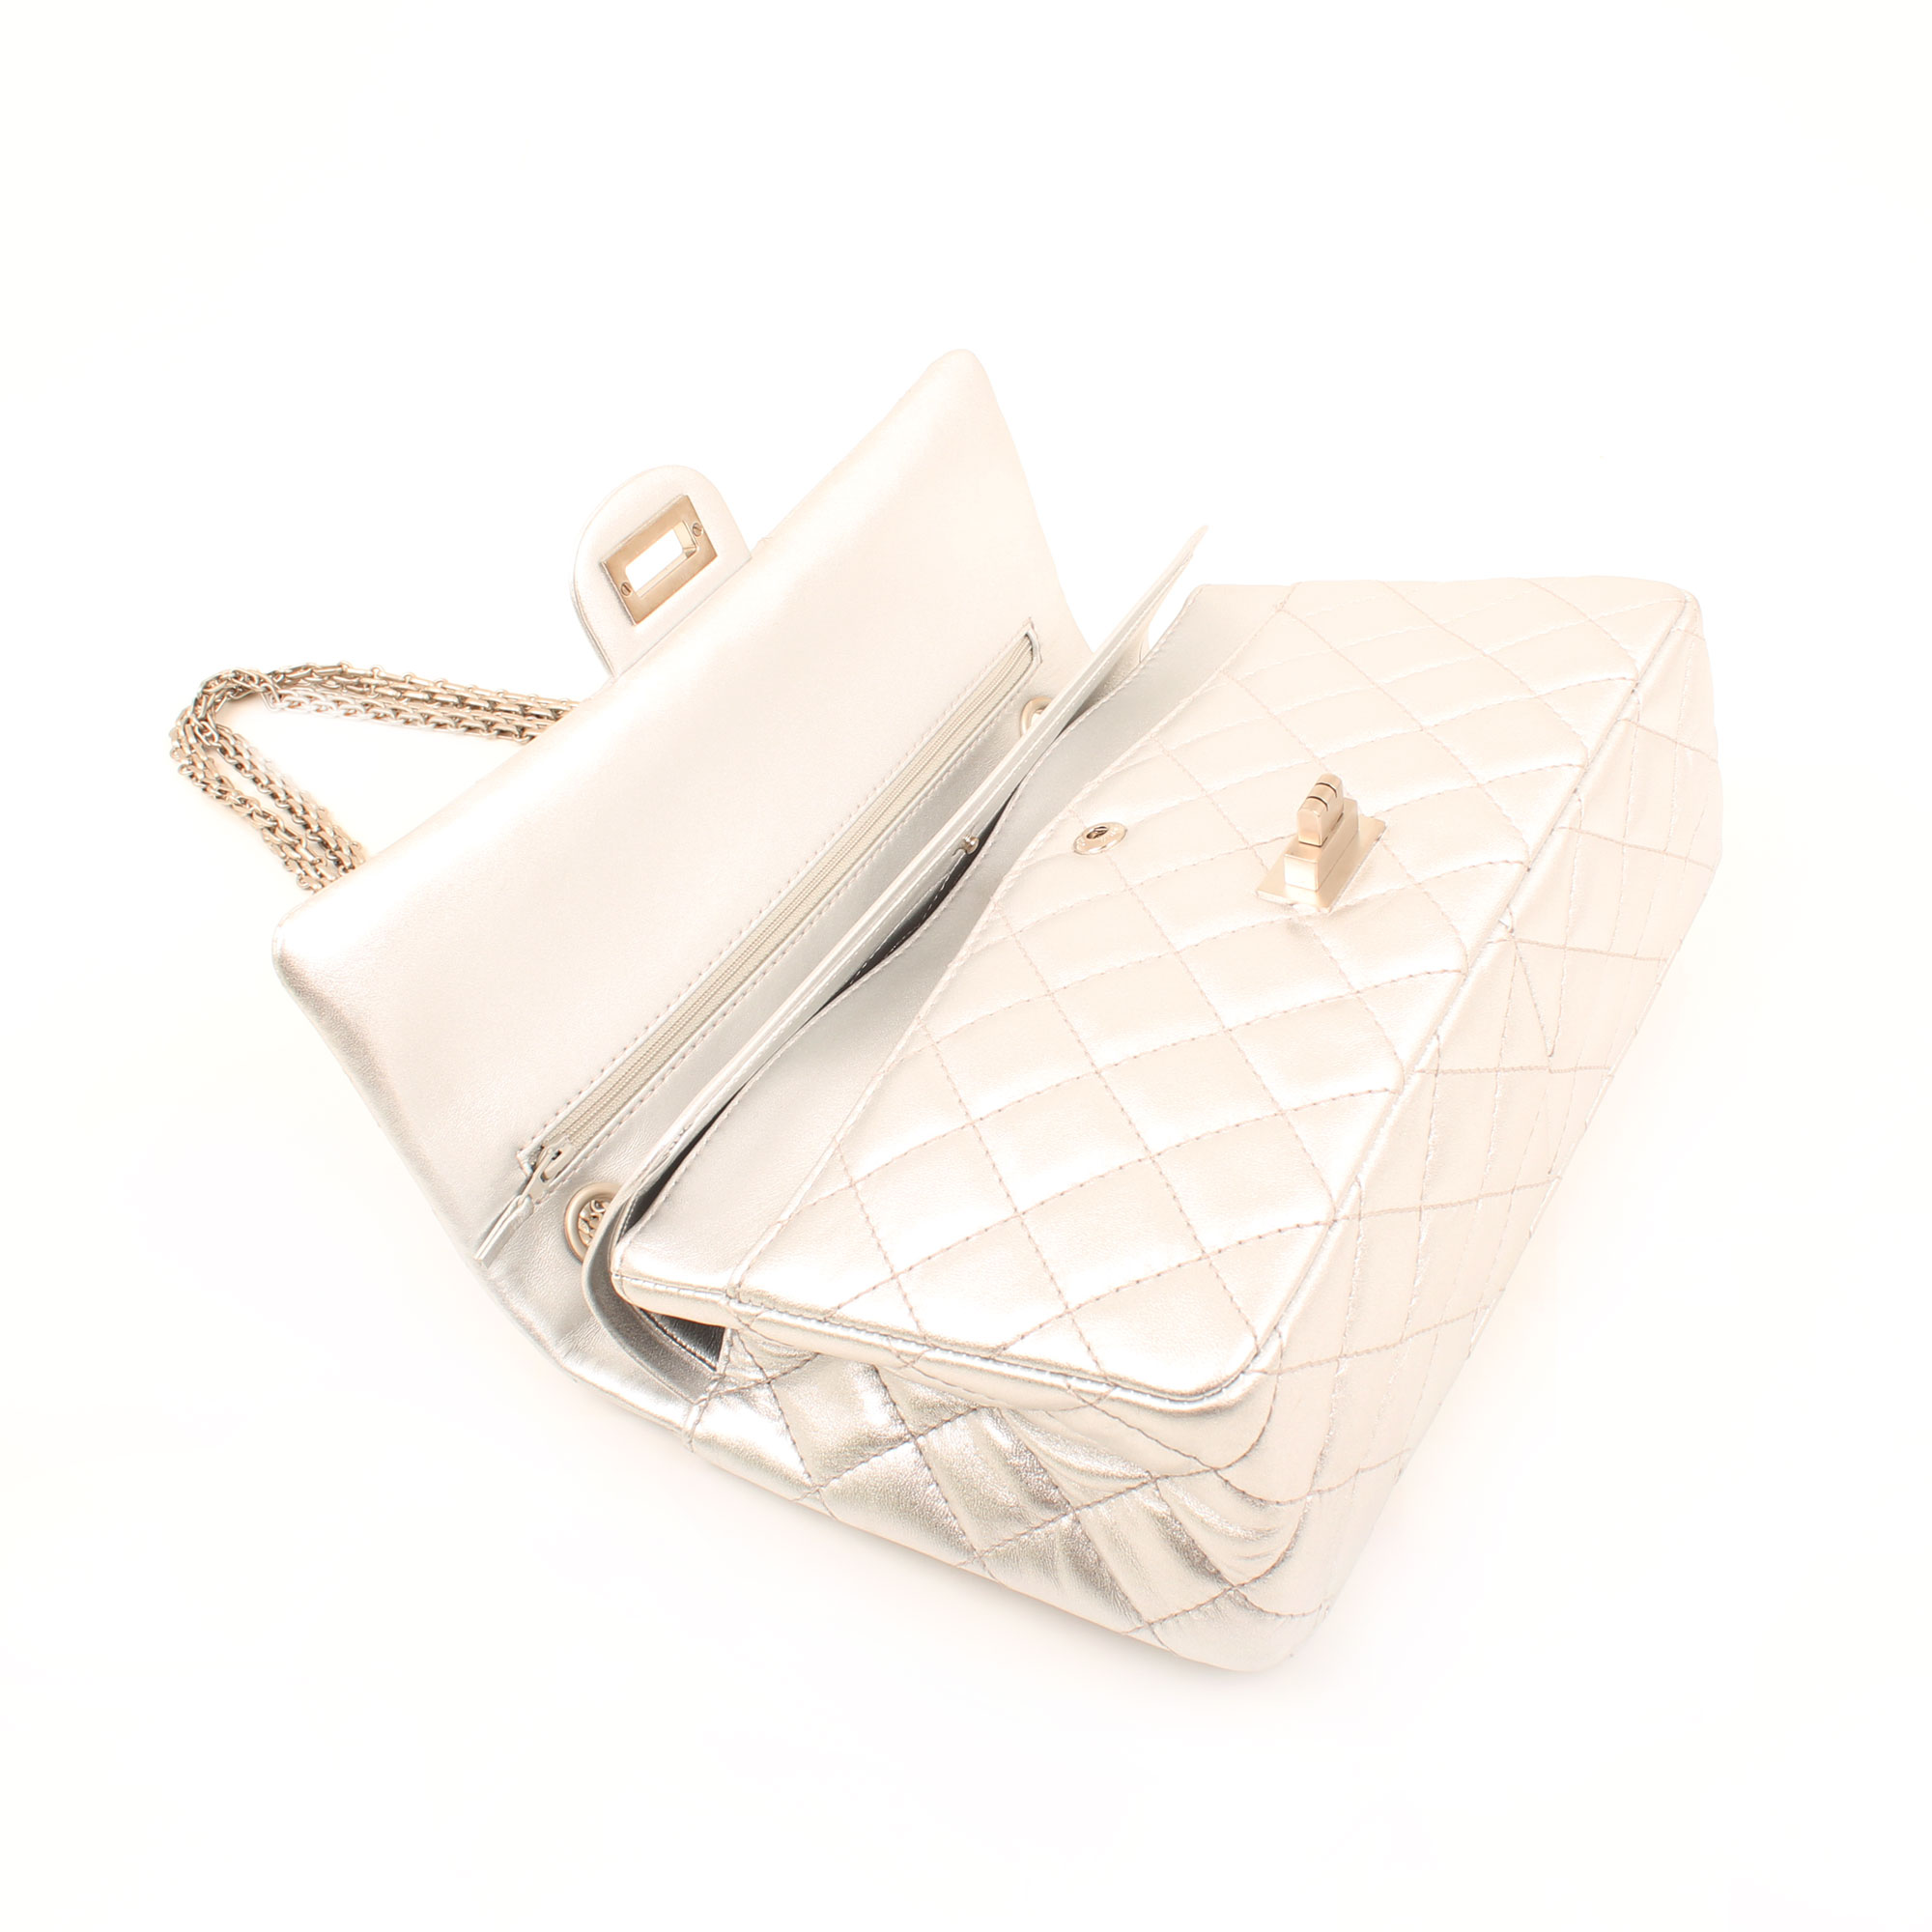 Imagen general del bolso chanel 255 reissue metallic silver